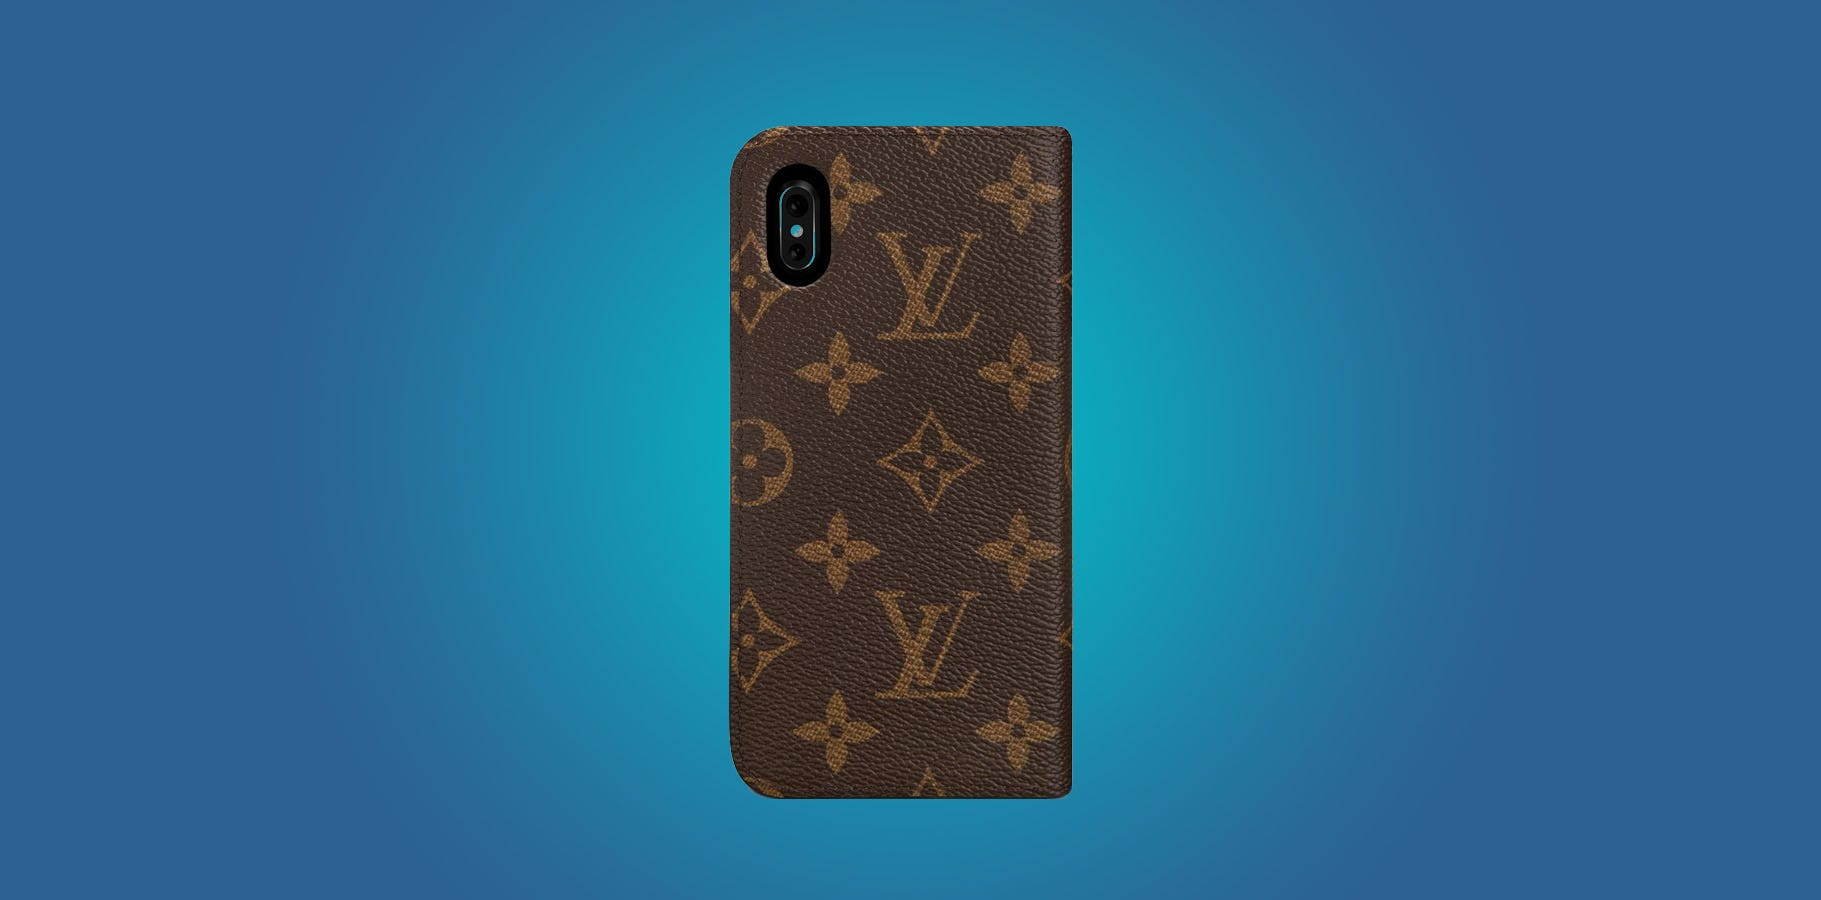 the best luxury iphone cases (to match your designer purse) \u2013 reviewhere\u0027s our rundown of some of the best super luxury iphone cases out there, for both iphone 8 and x